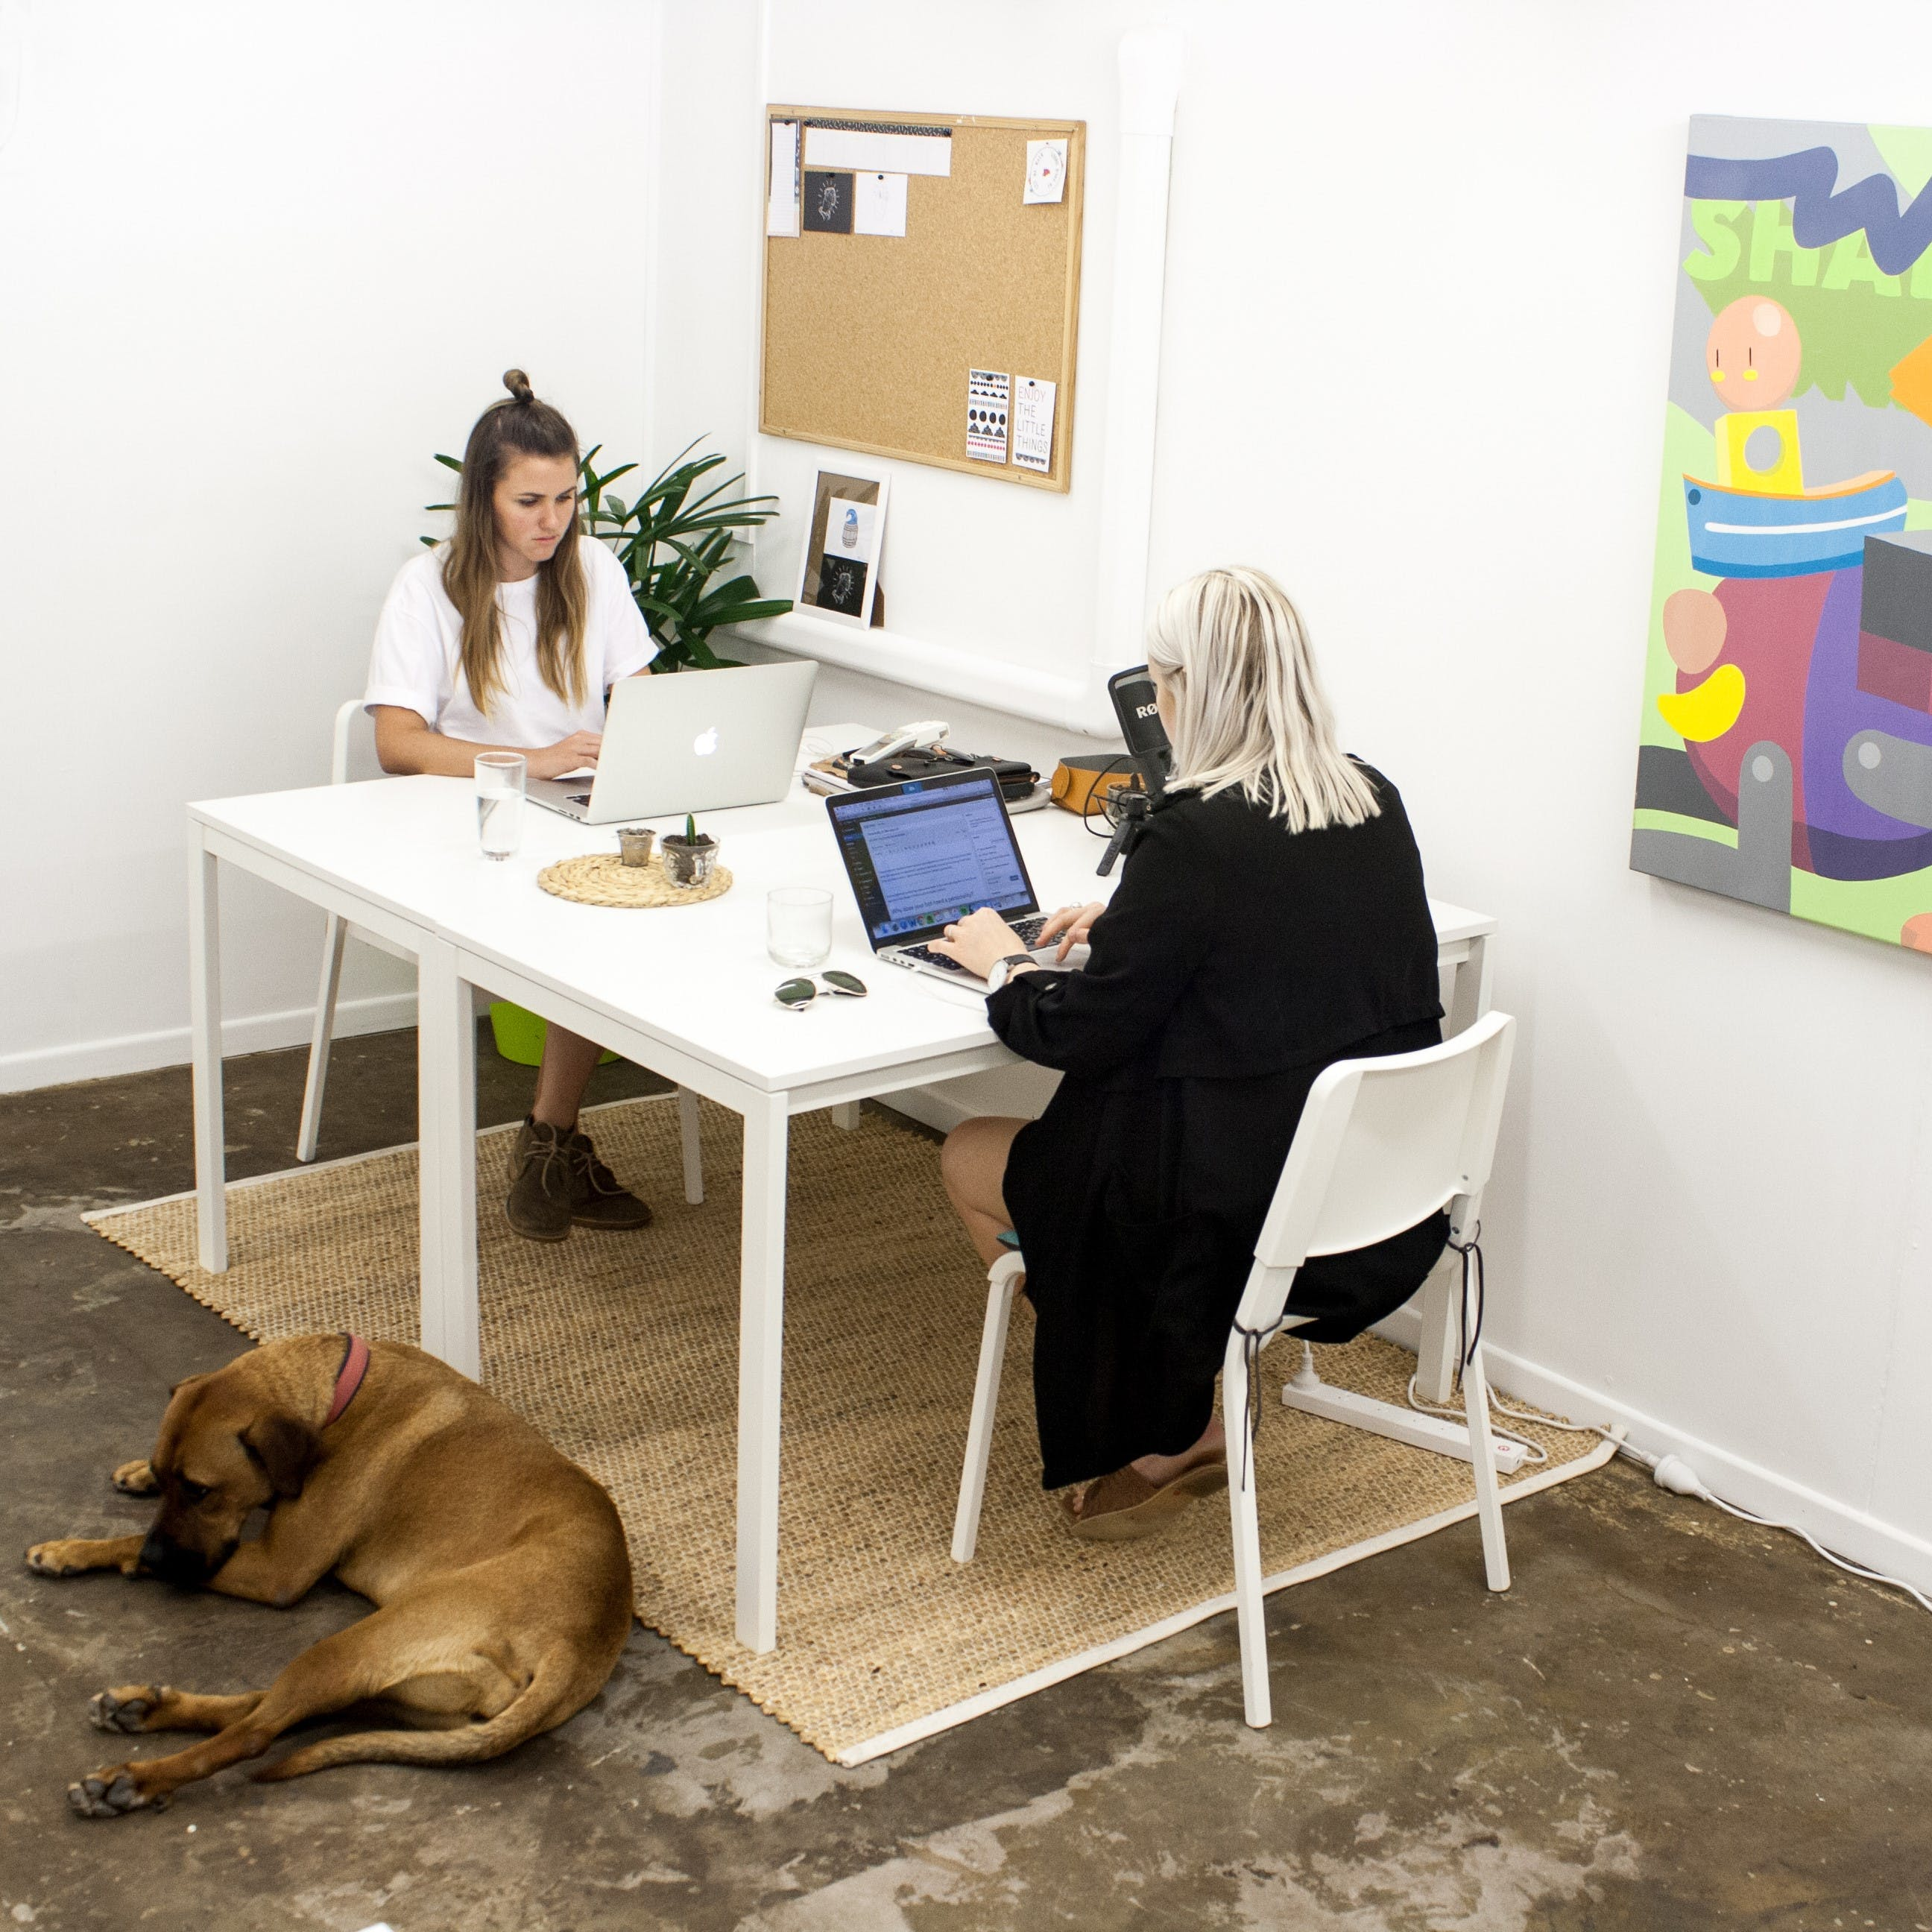 Event Space, multi-use area at Common Collective, image 1